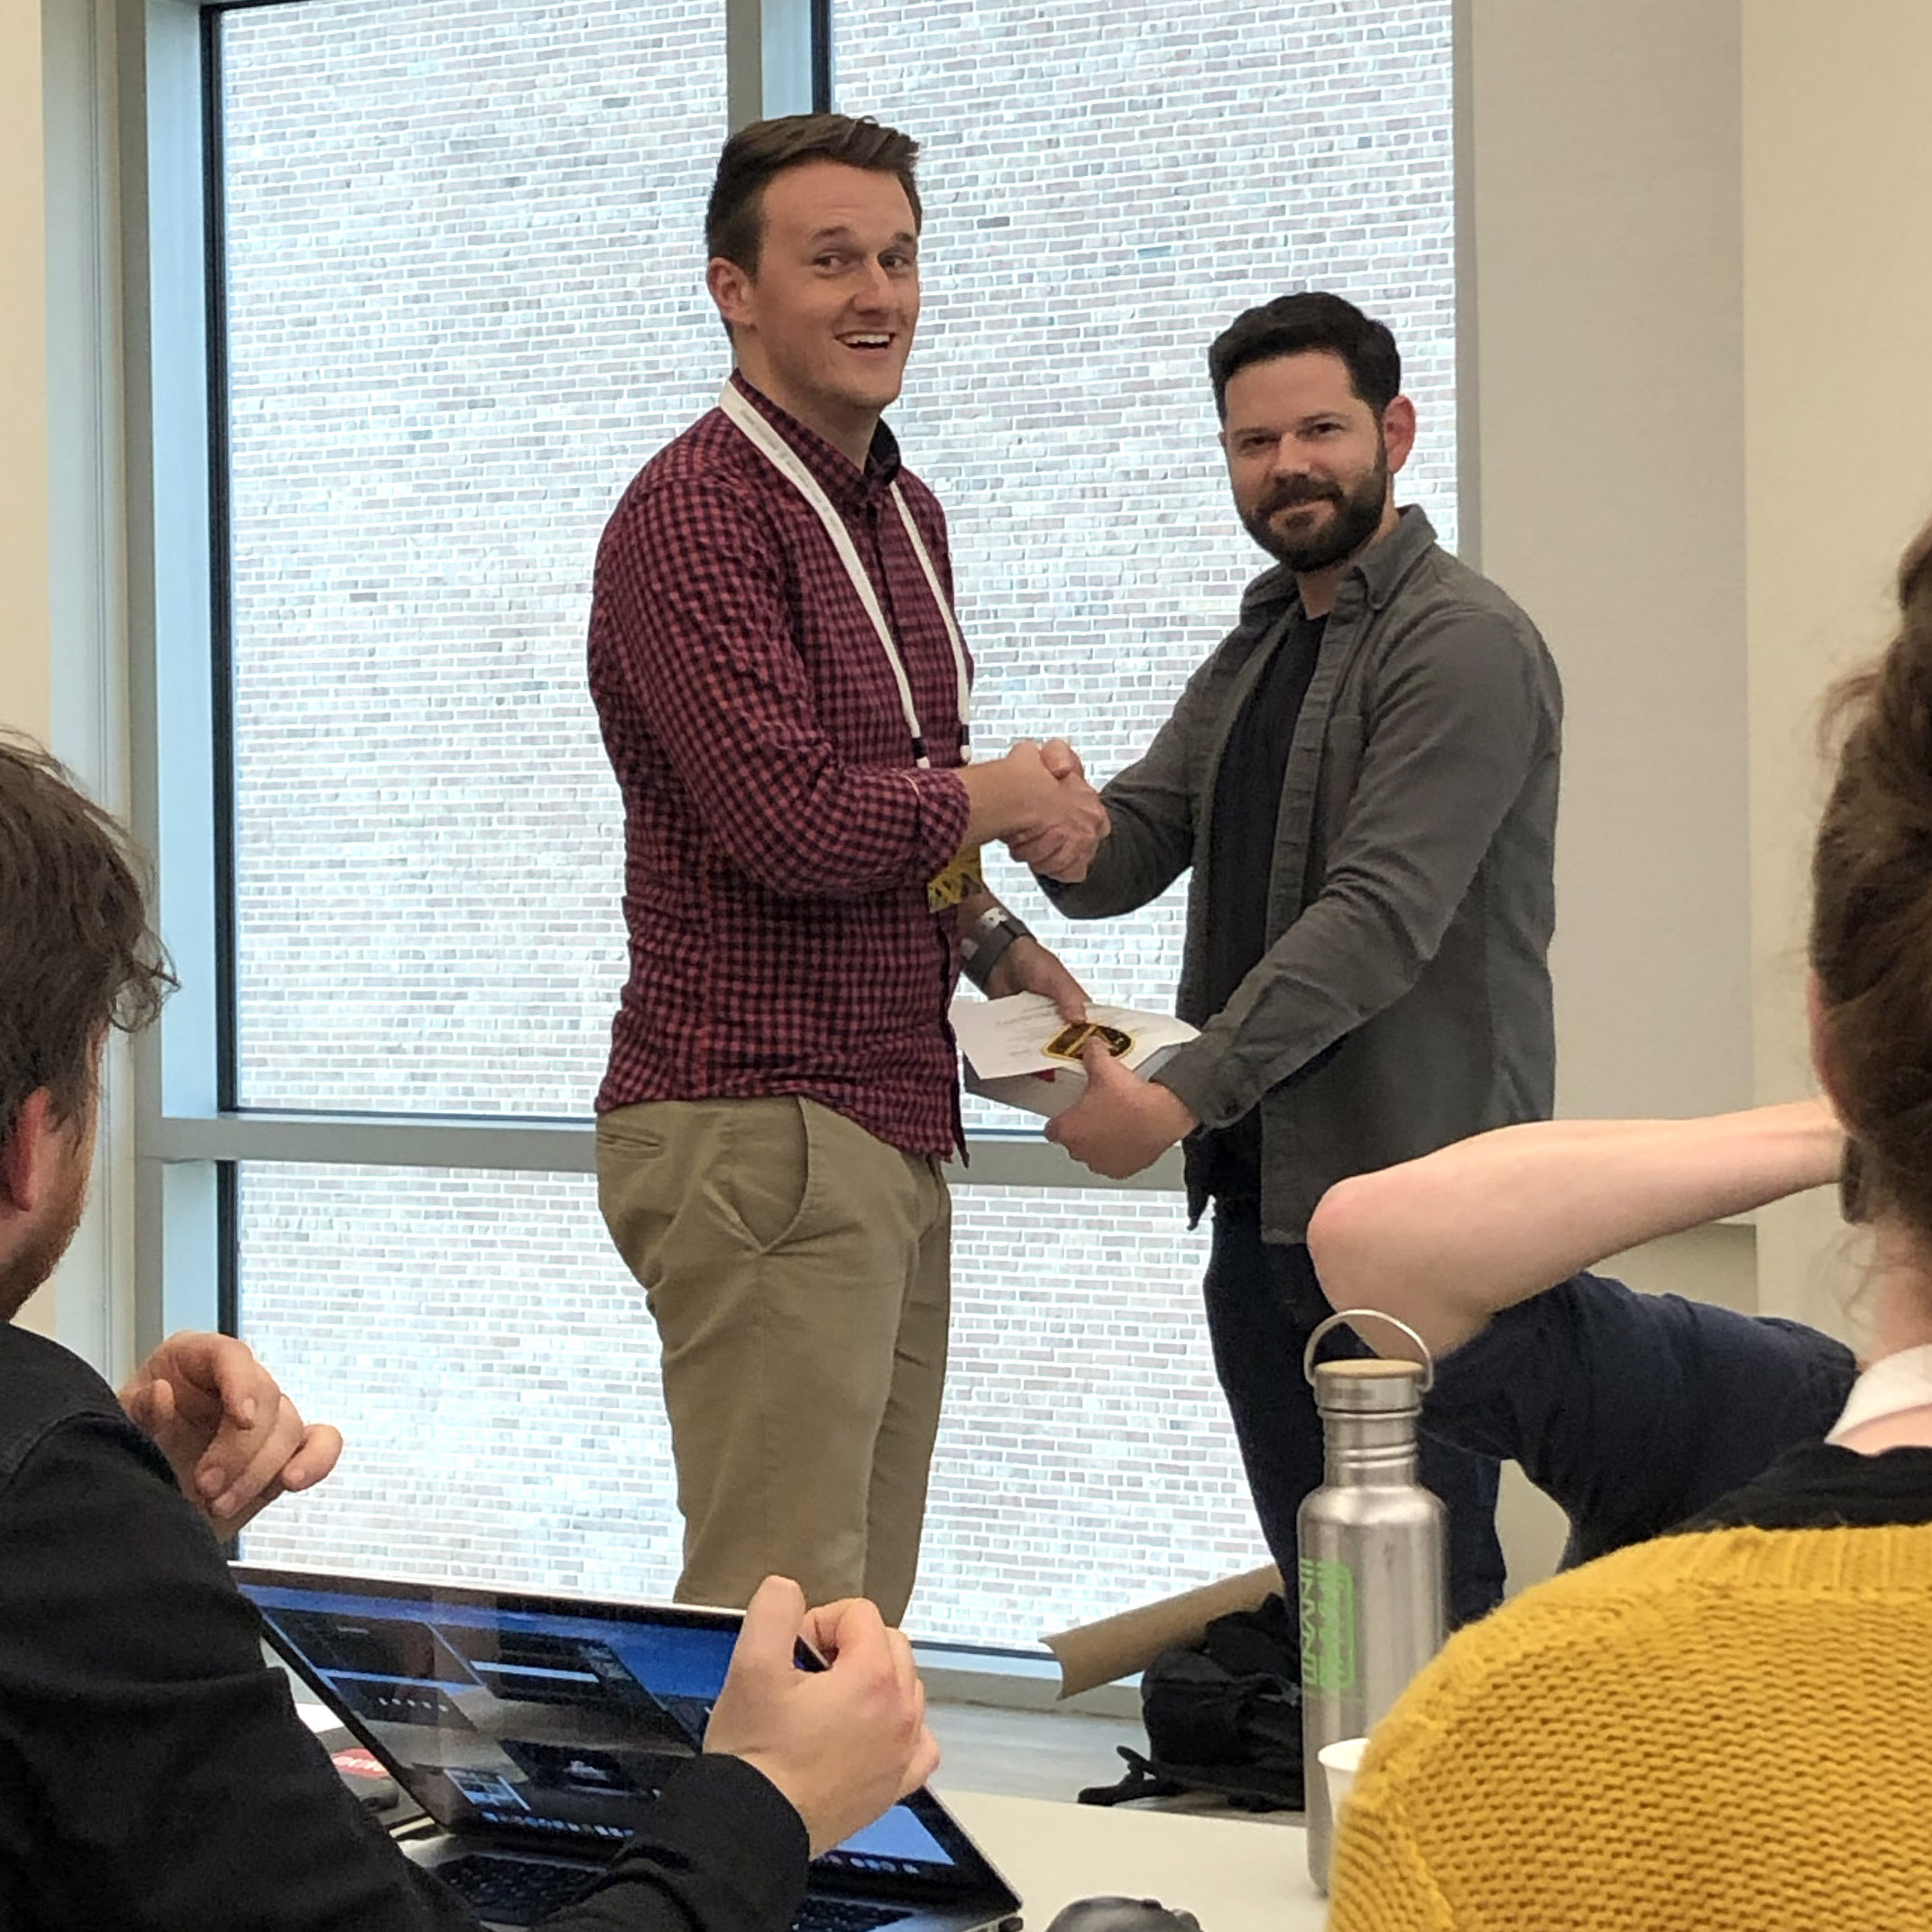 Austin and Nathan shaking hands at a playful, low-key course completion ceremony